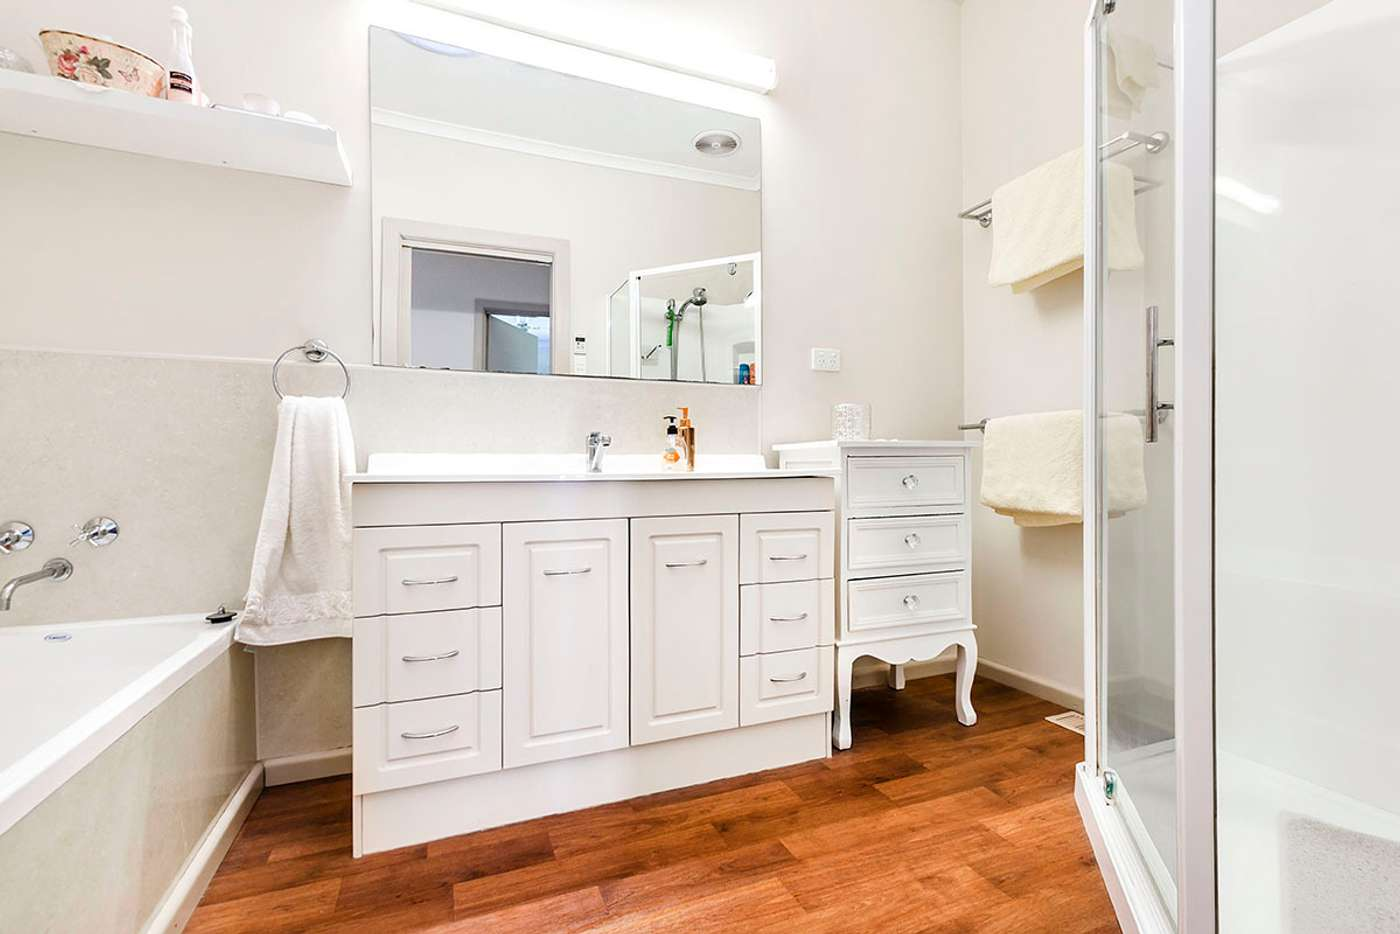 Sixth view of Homely house listing, 156 Cape Nelson Road, Portland VIC 3305